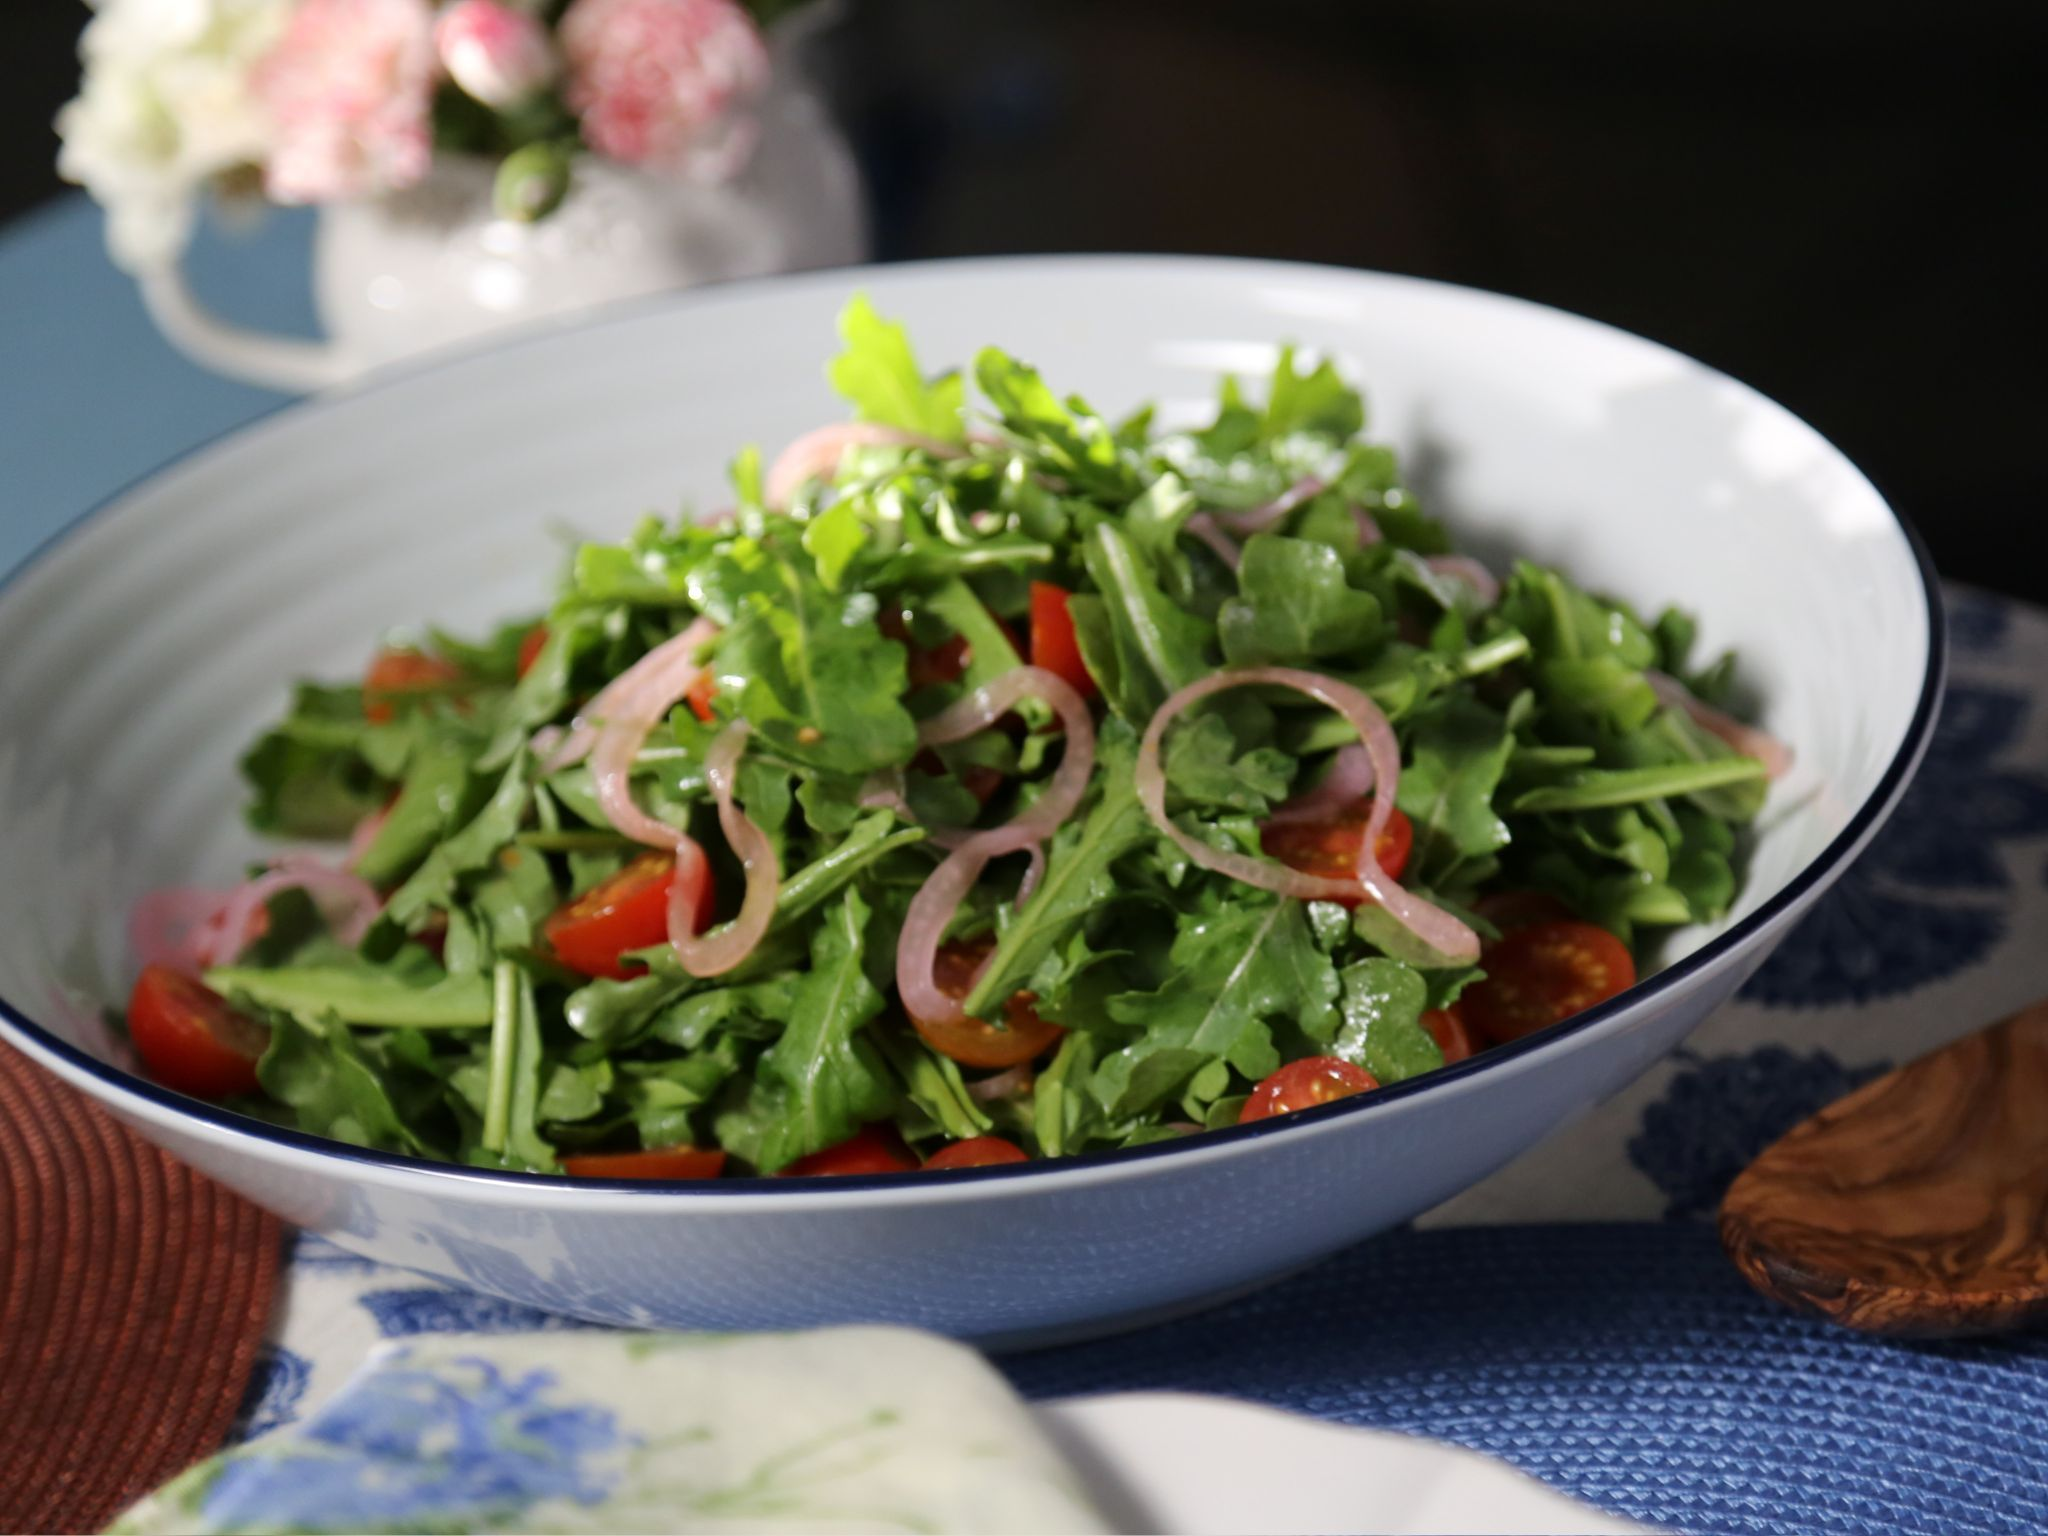 Arugula Salad With Pickled Red Onions And Champagne Vinaigrette Recipe Vinaigrette Recipes Food Network Recipes Pickled Red Onions